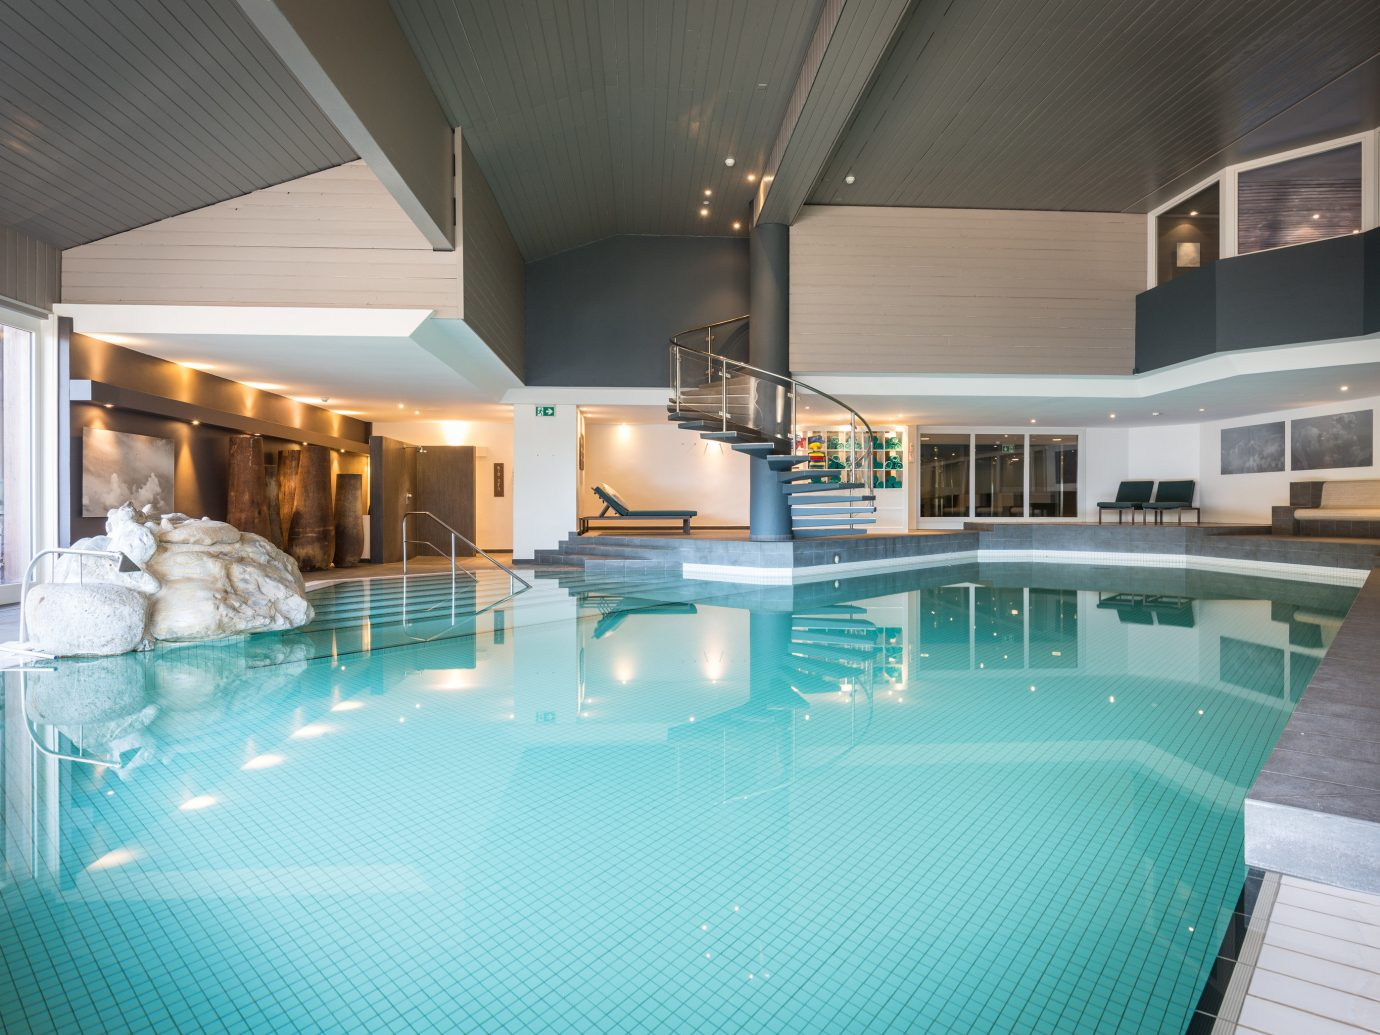 Boutique Hotels Hotels Outdoors + Adventure Winter ceiling indoor floor swimming pool chair leisure centre leisure Architecture estate real estate thermae interior design amenity apartment resort town daylighting Pool hotel penthouse apartment furniture